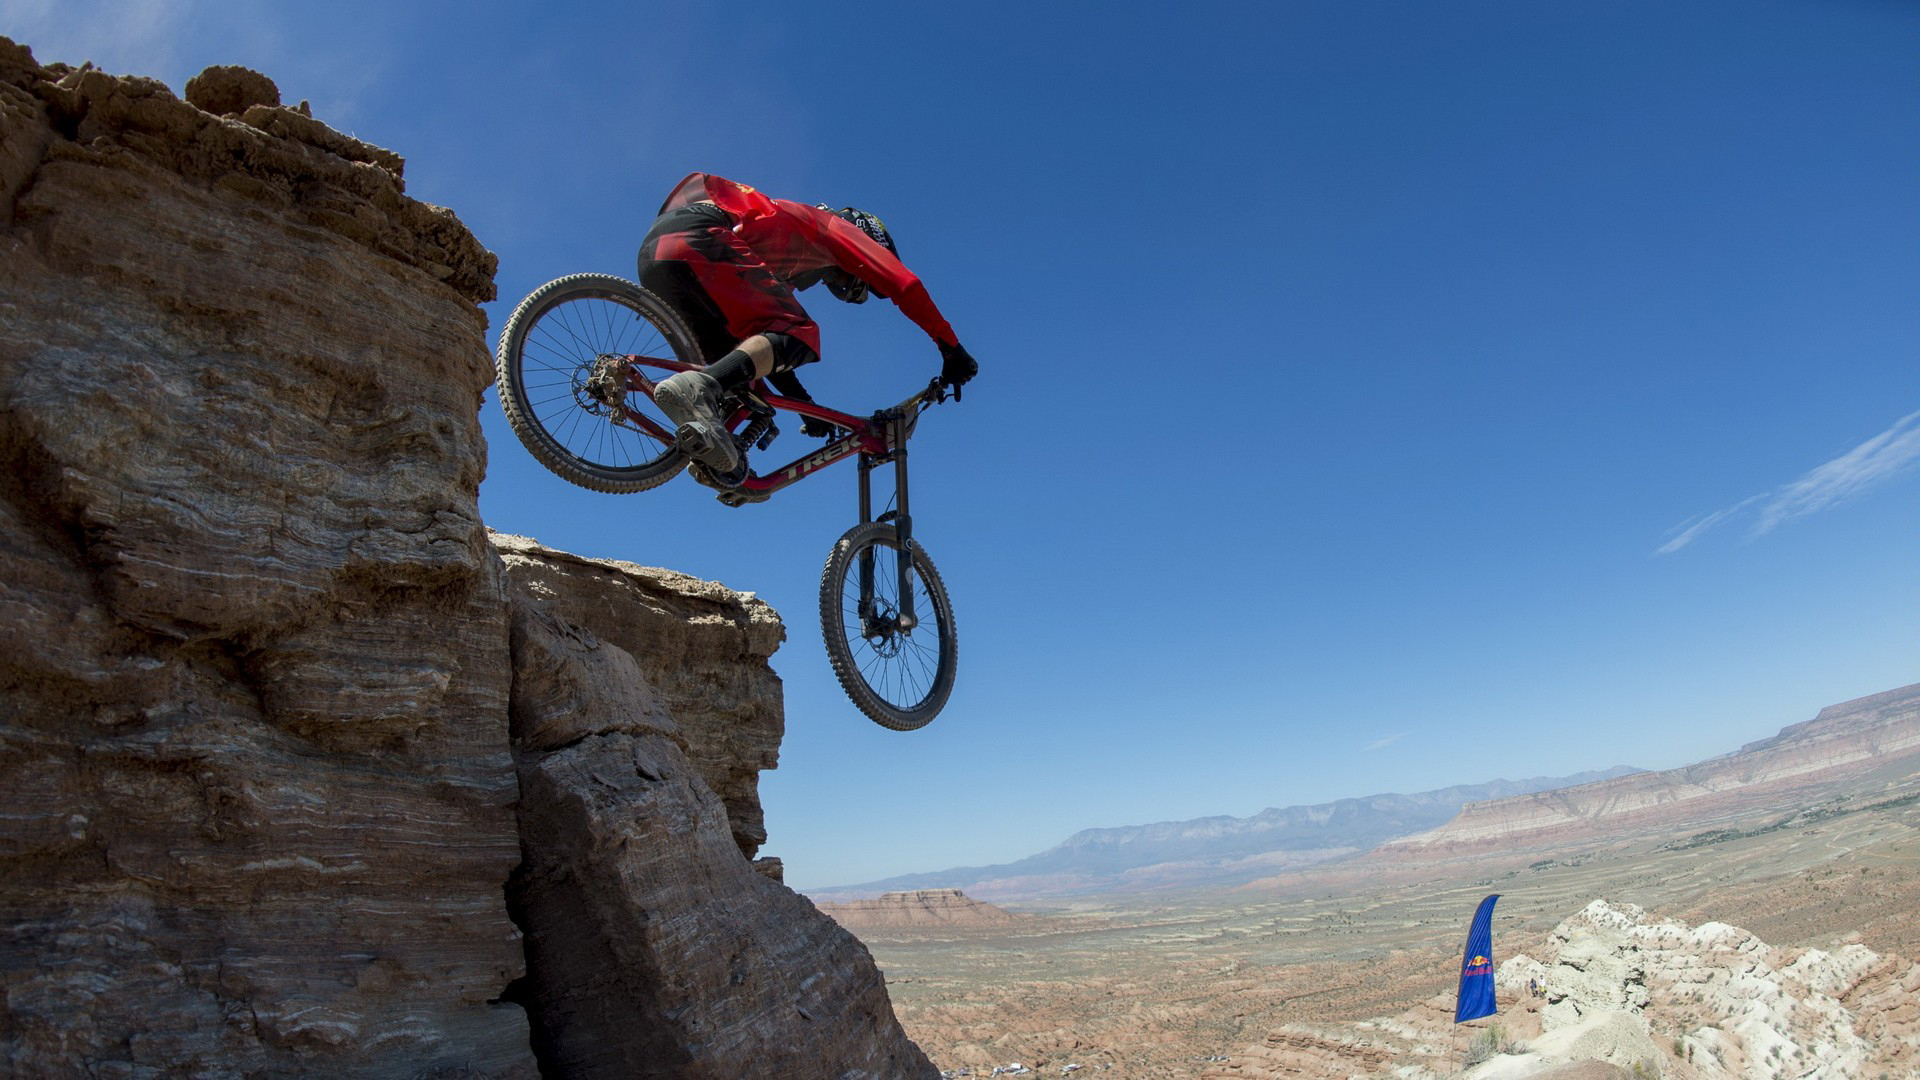 Bmw Mountain View >> 1 Mountainbike HD Wallpapers | Backgrounds - Wallpaper Abyss